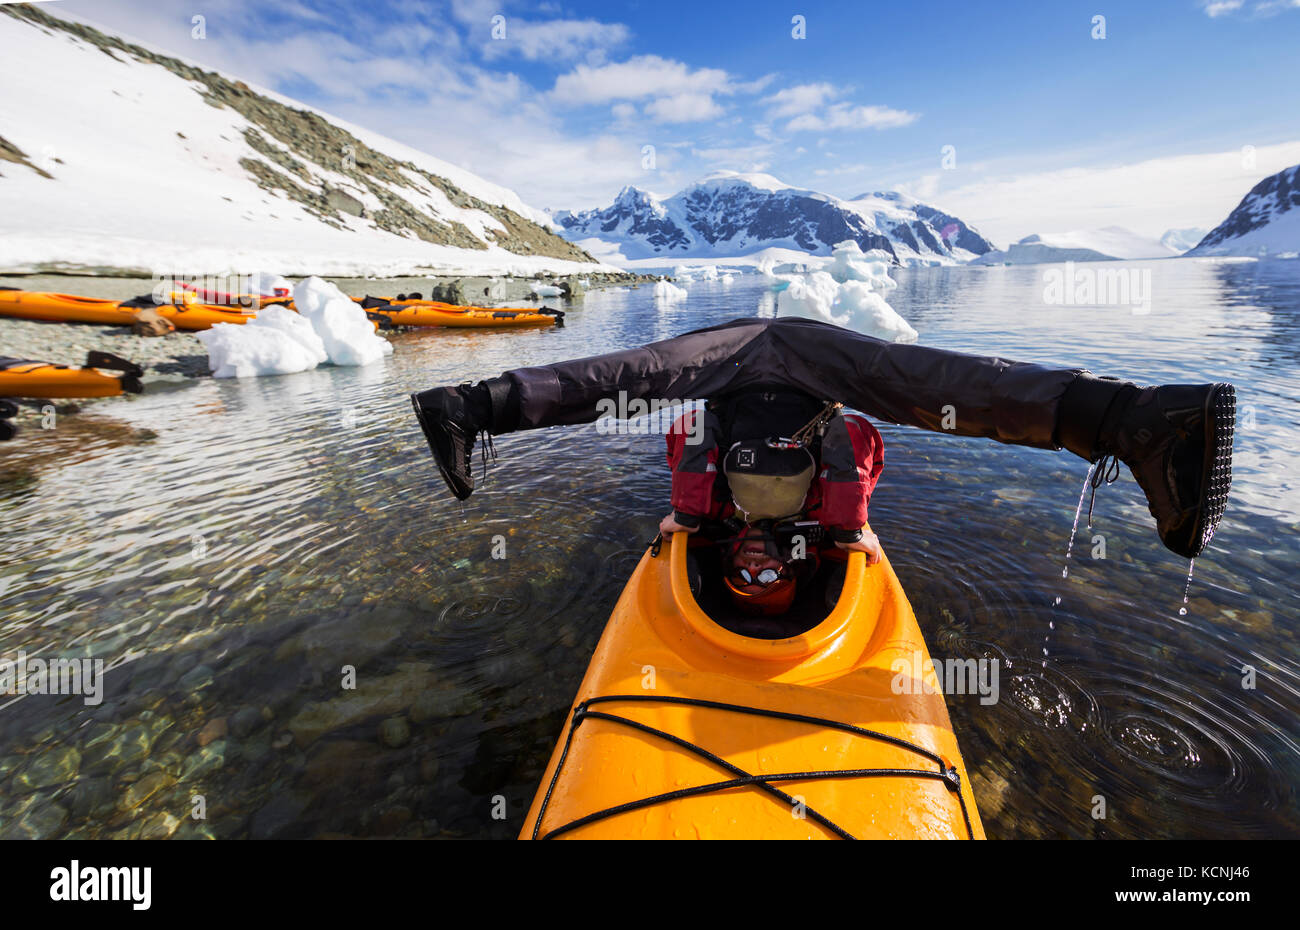 A Kayak guide demonstrates his unique balancing abilities with his Kayak while paddling in Danco Harbour, The Aantarctic - Stock Image